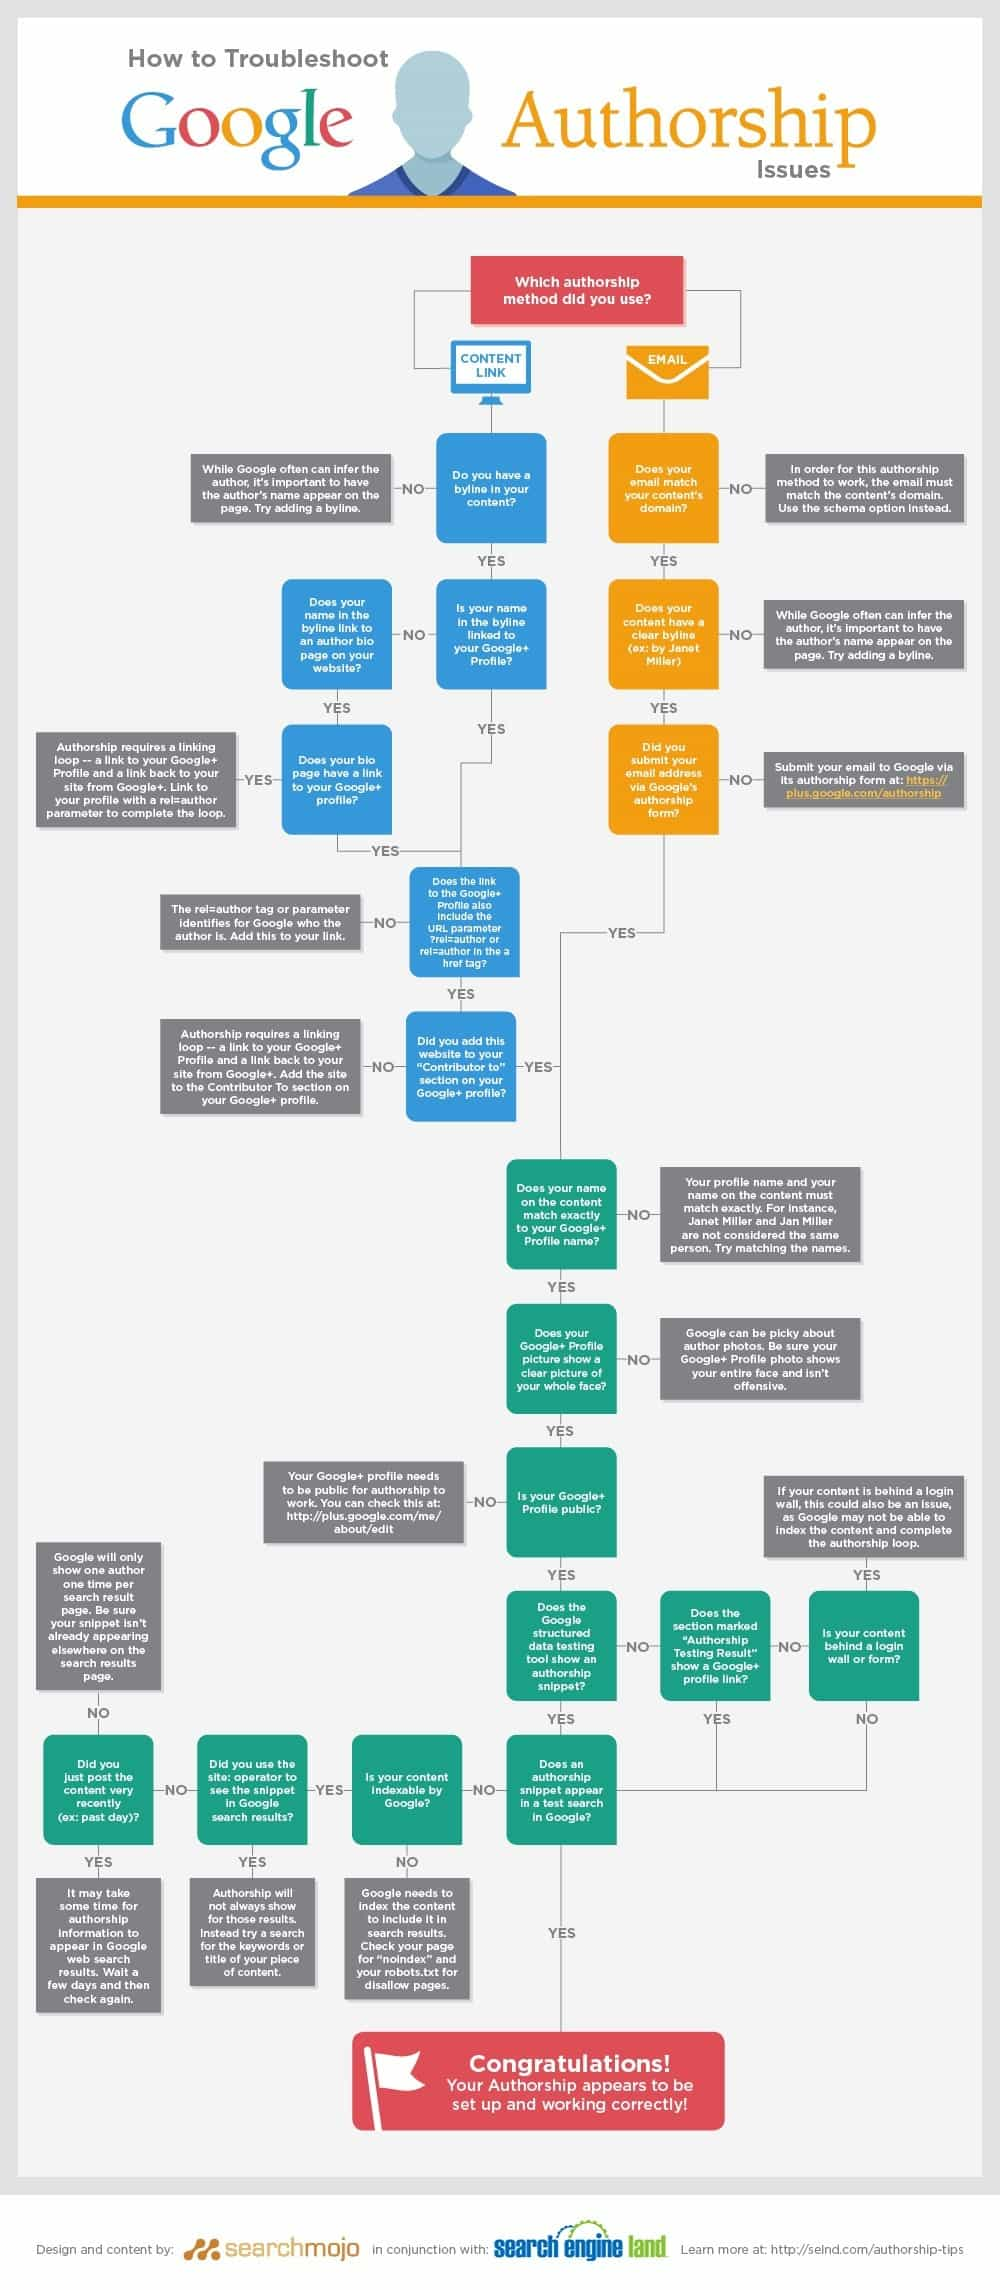 How to troubleshoot issues with Google Authorship - a visual guide